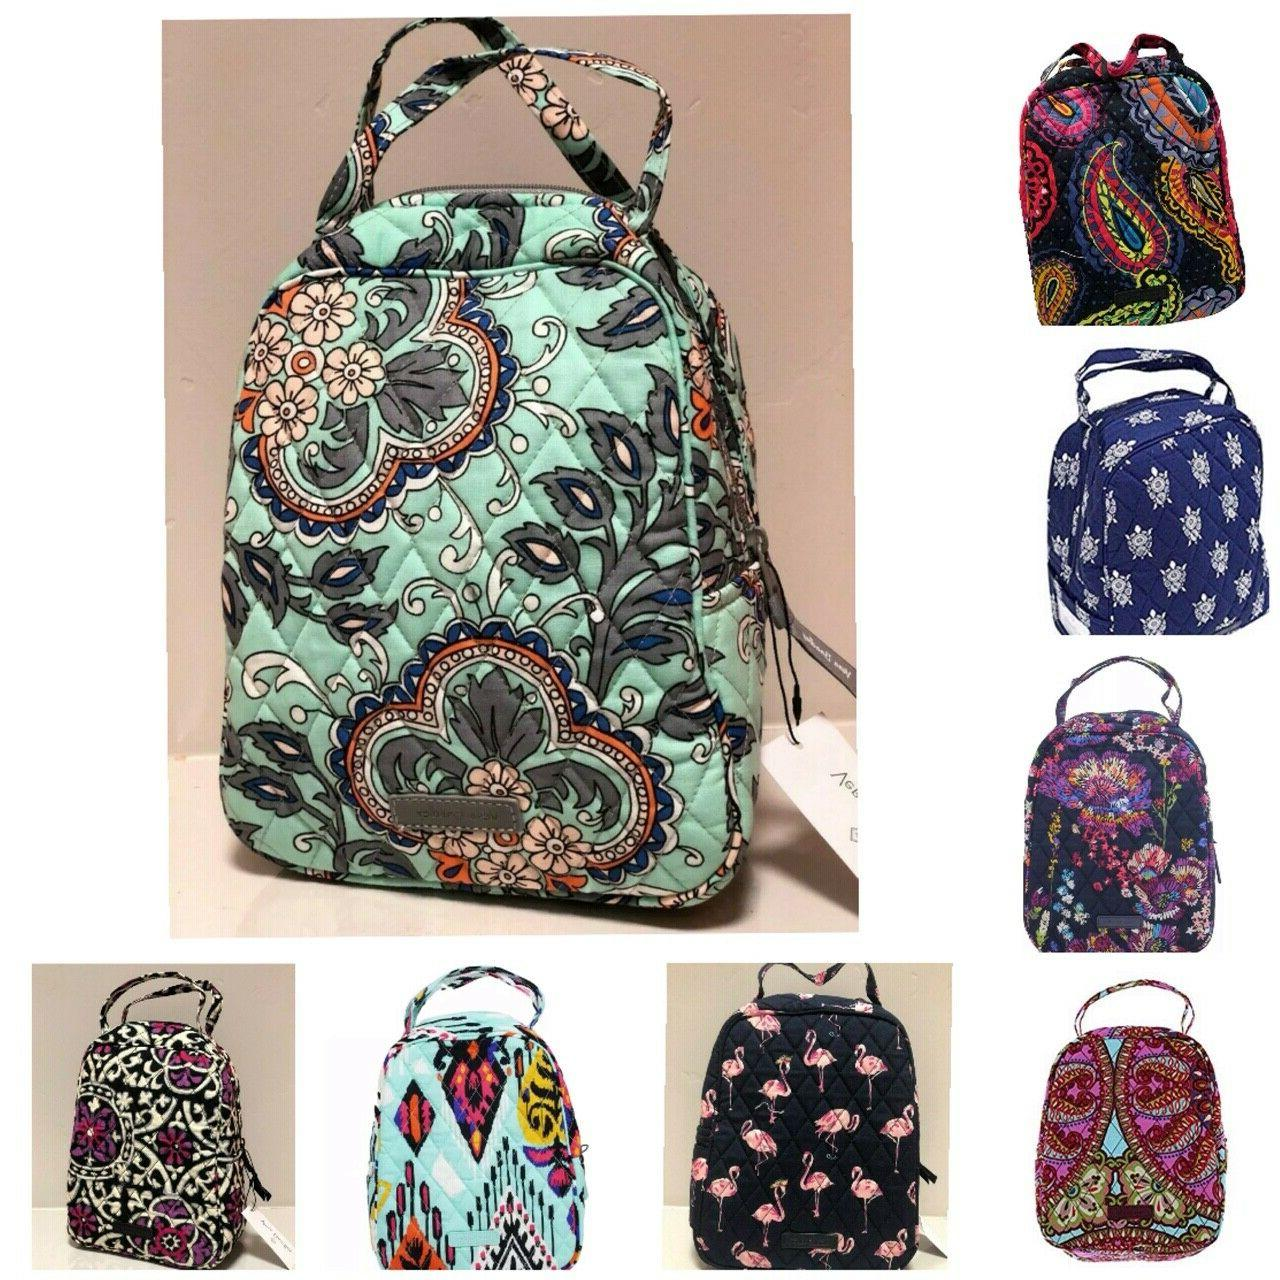 nwt insulated lunch bag lunch bunch bag